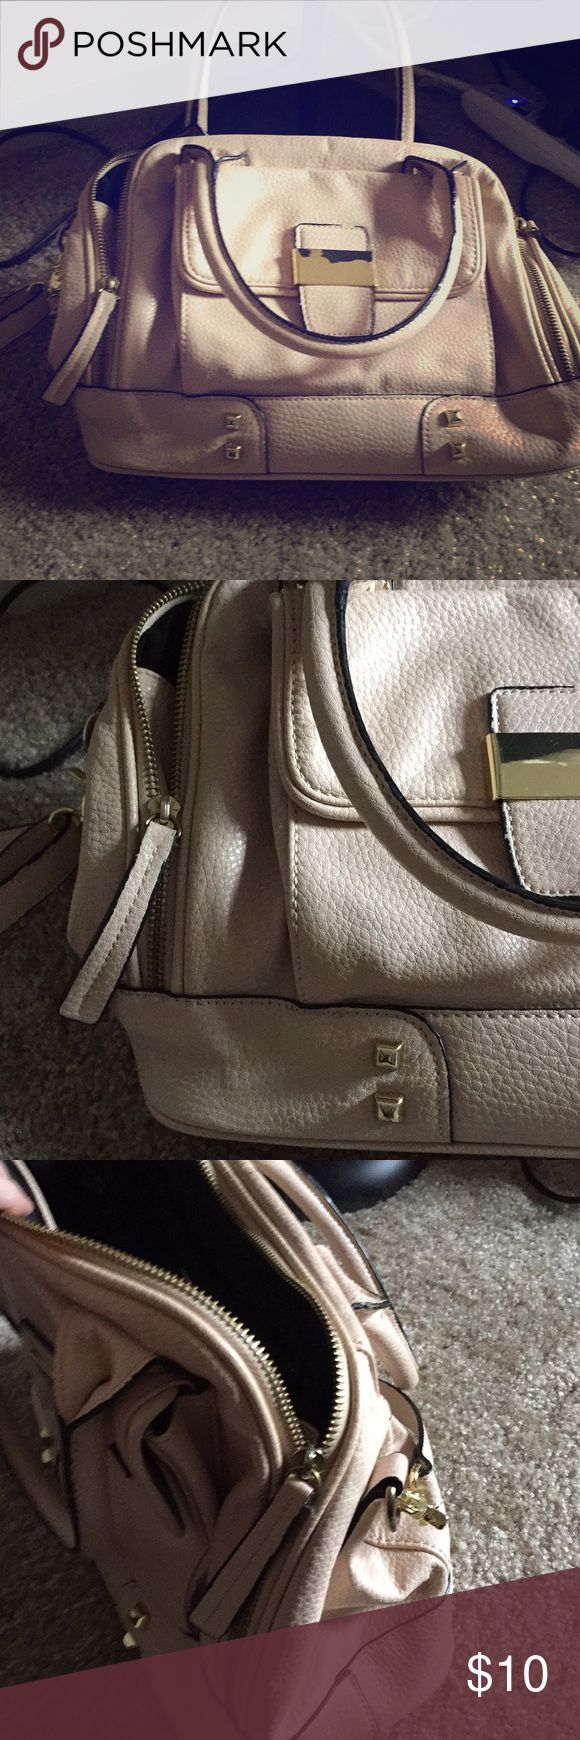 Cosmopolitan purse Great purse for work or going out cosmopolitain Bags Shoulder Bags